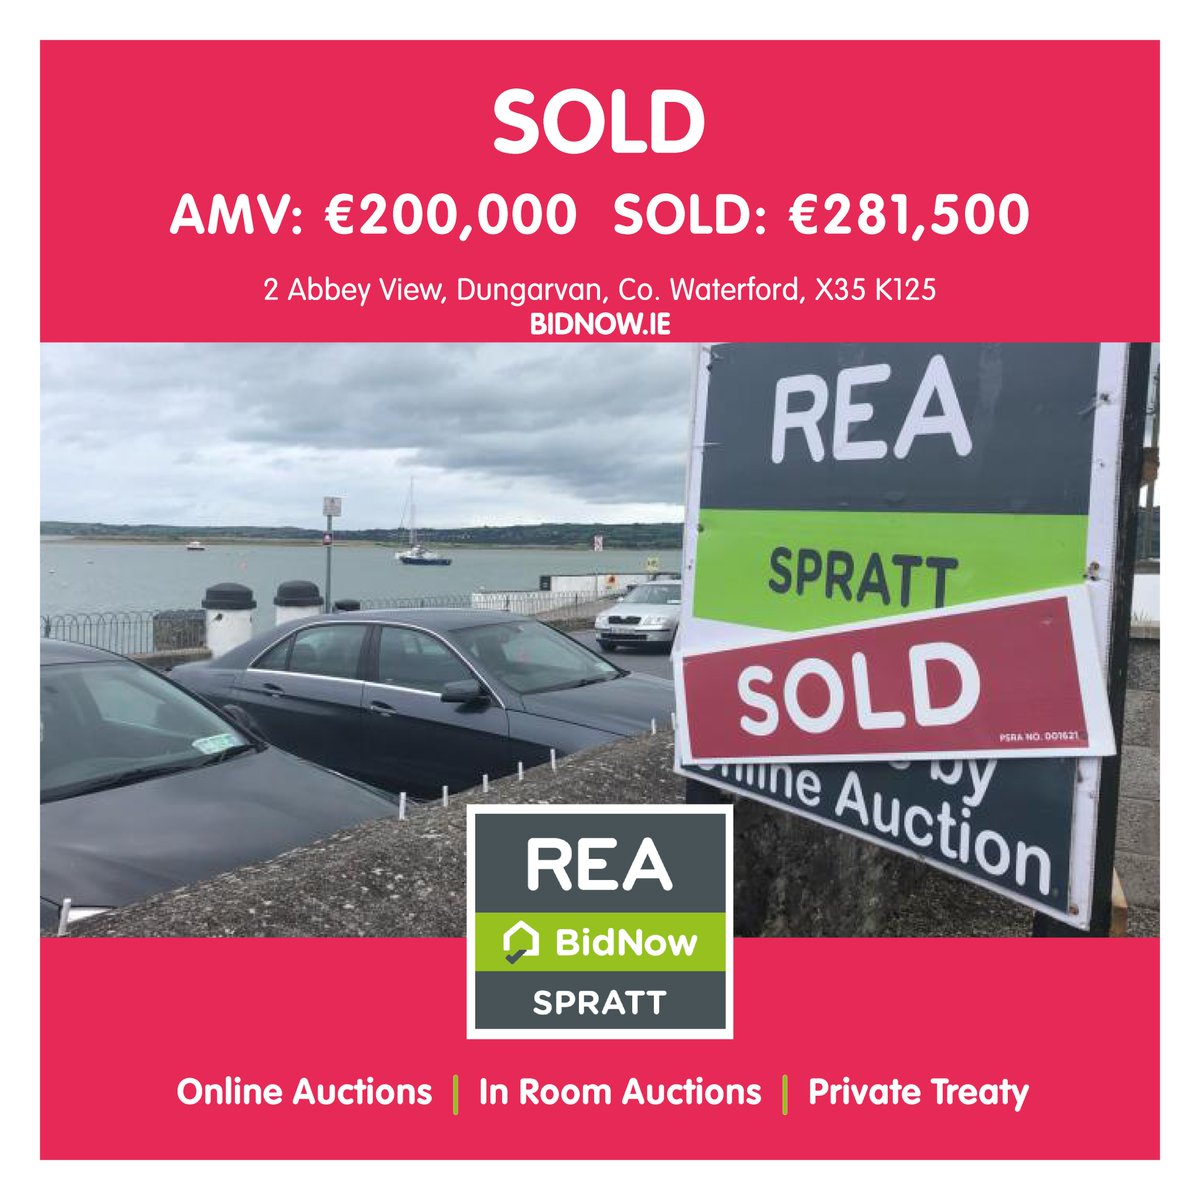 SOLD BY ONLINE AUCTION & WHAT A RESULT!!  AMV: €200,000 SOLD: €281,500 A total of 78 bids between 7 parties!  DM @REASpratt for more info or visit: https://t.co/wG1oiEFs4l  Buy or sell your property from the safety and comfort of your own home online at https://t.co/99KI0QbpnI https://t.co/HfFYkeU4cr